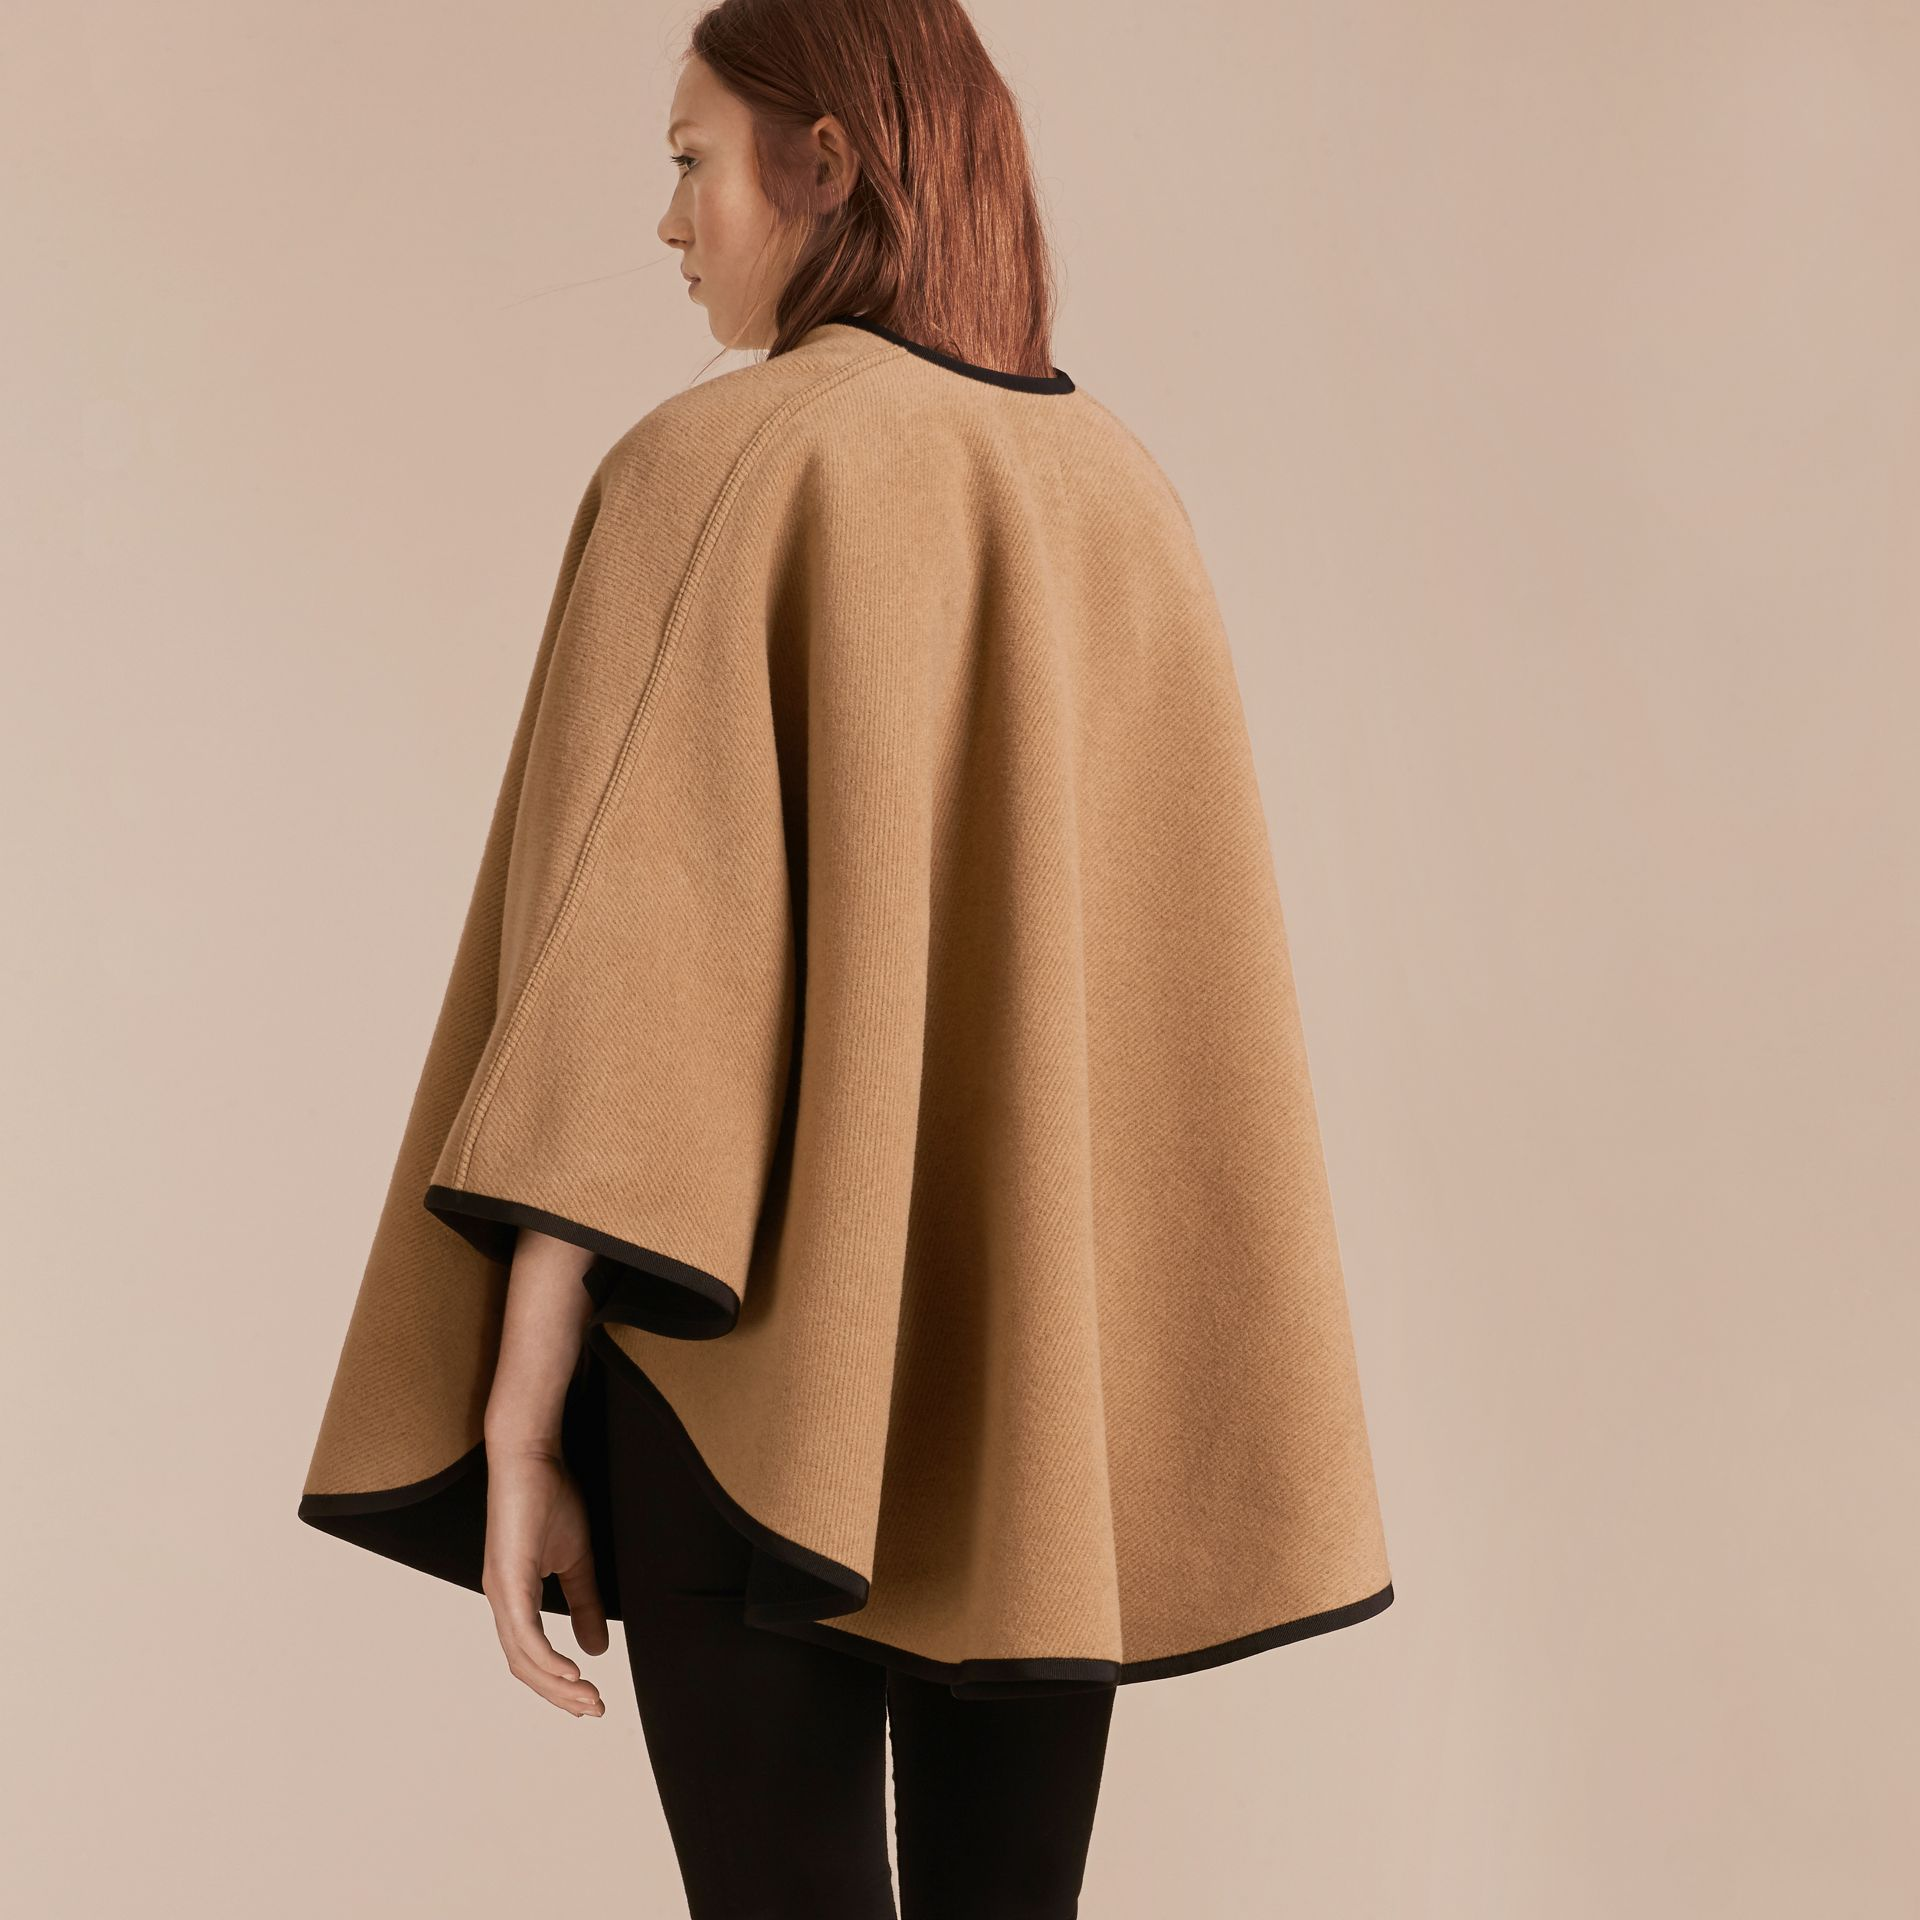 Camel/black Wool Cashmere Military Cape Camel/black - gallery image 3